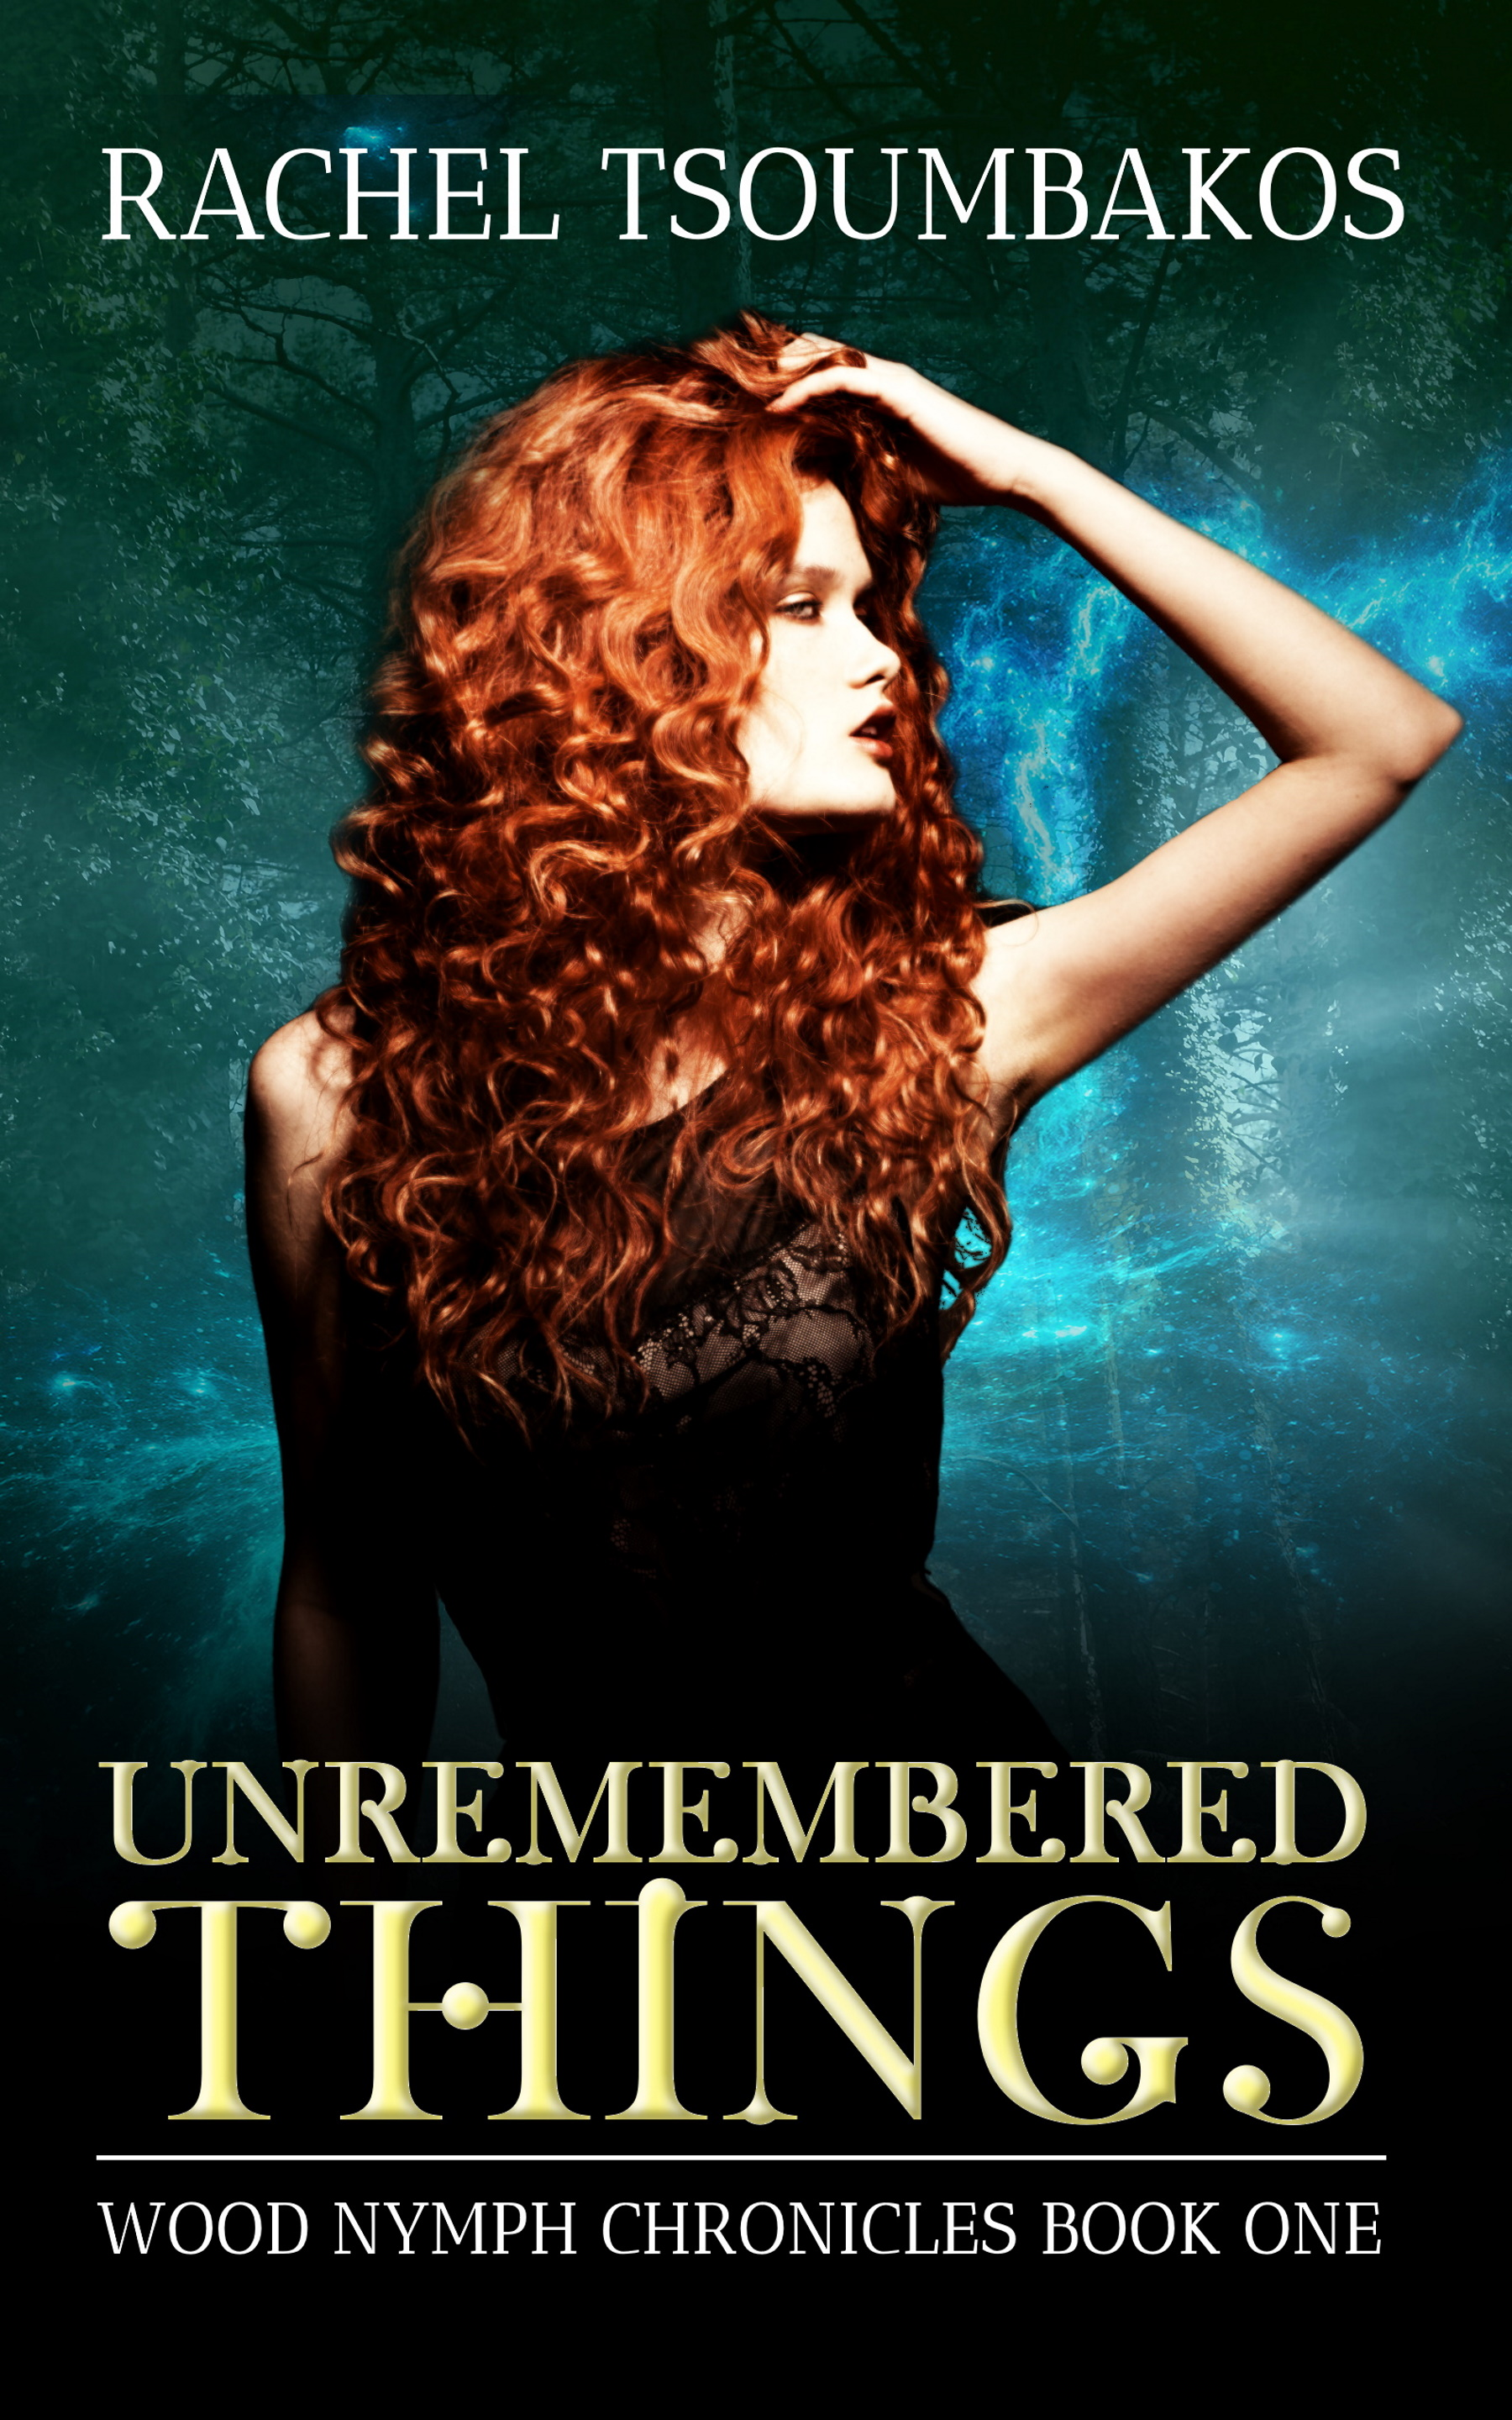 Unremembered Things by Rachel Tsoumbakos